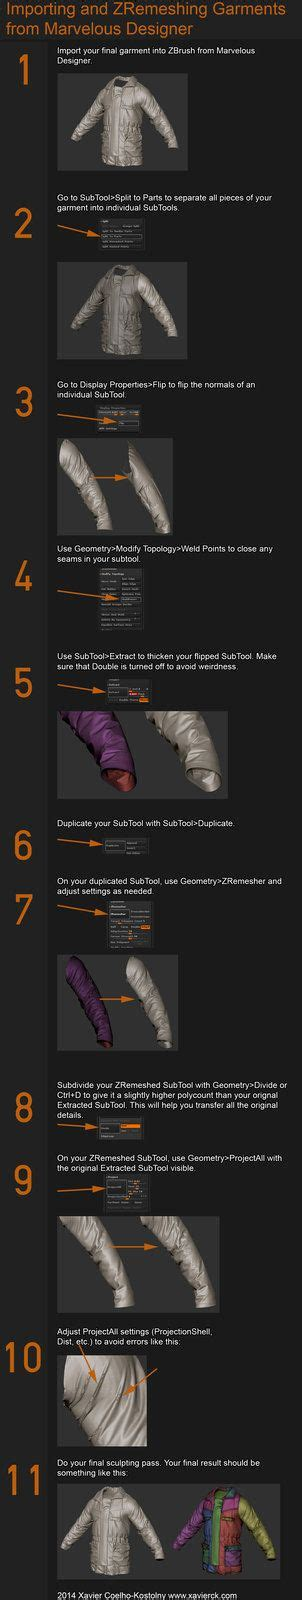 zbrush tutorials best 811 best images about zbrush tutorials on pinterest